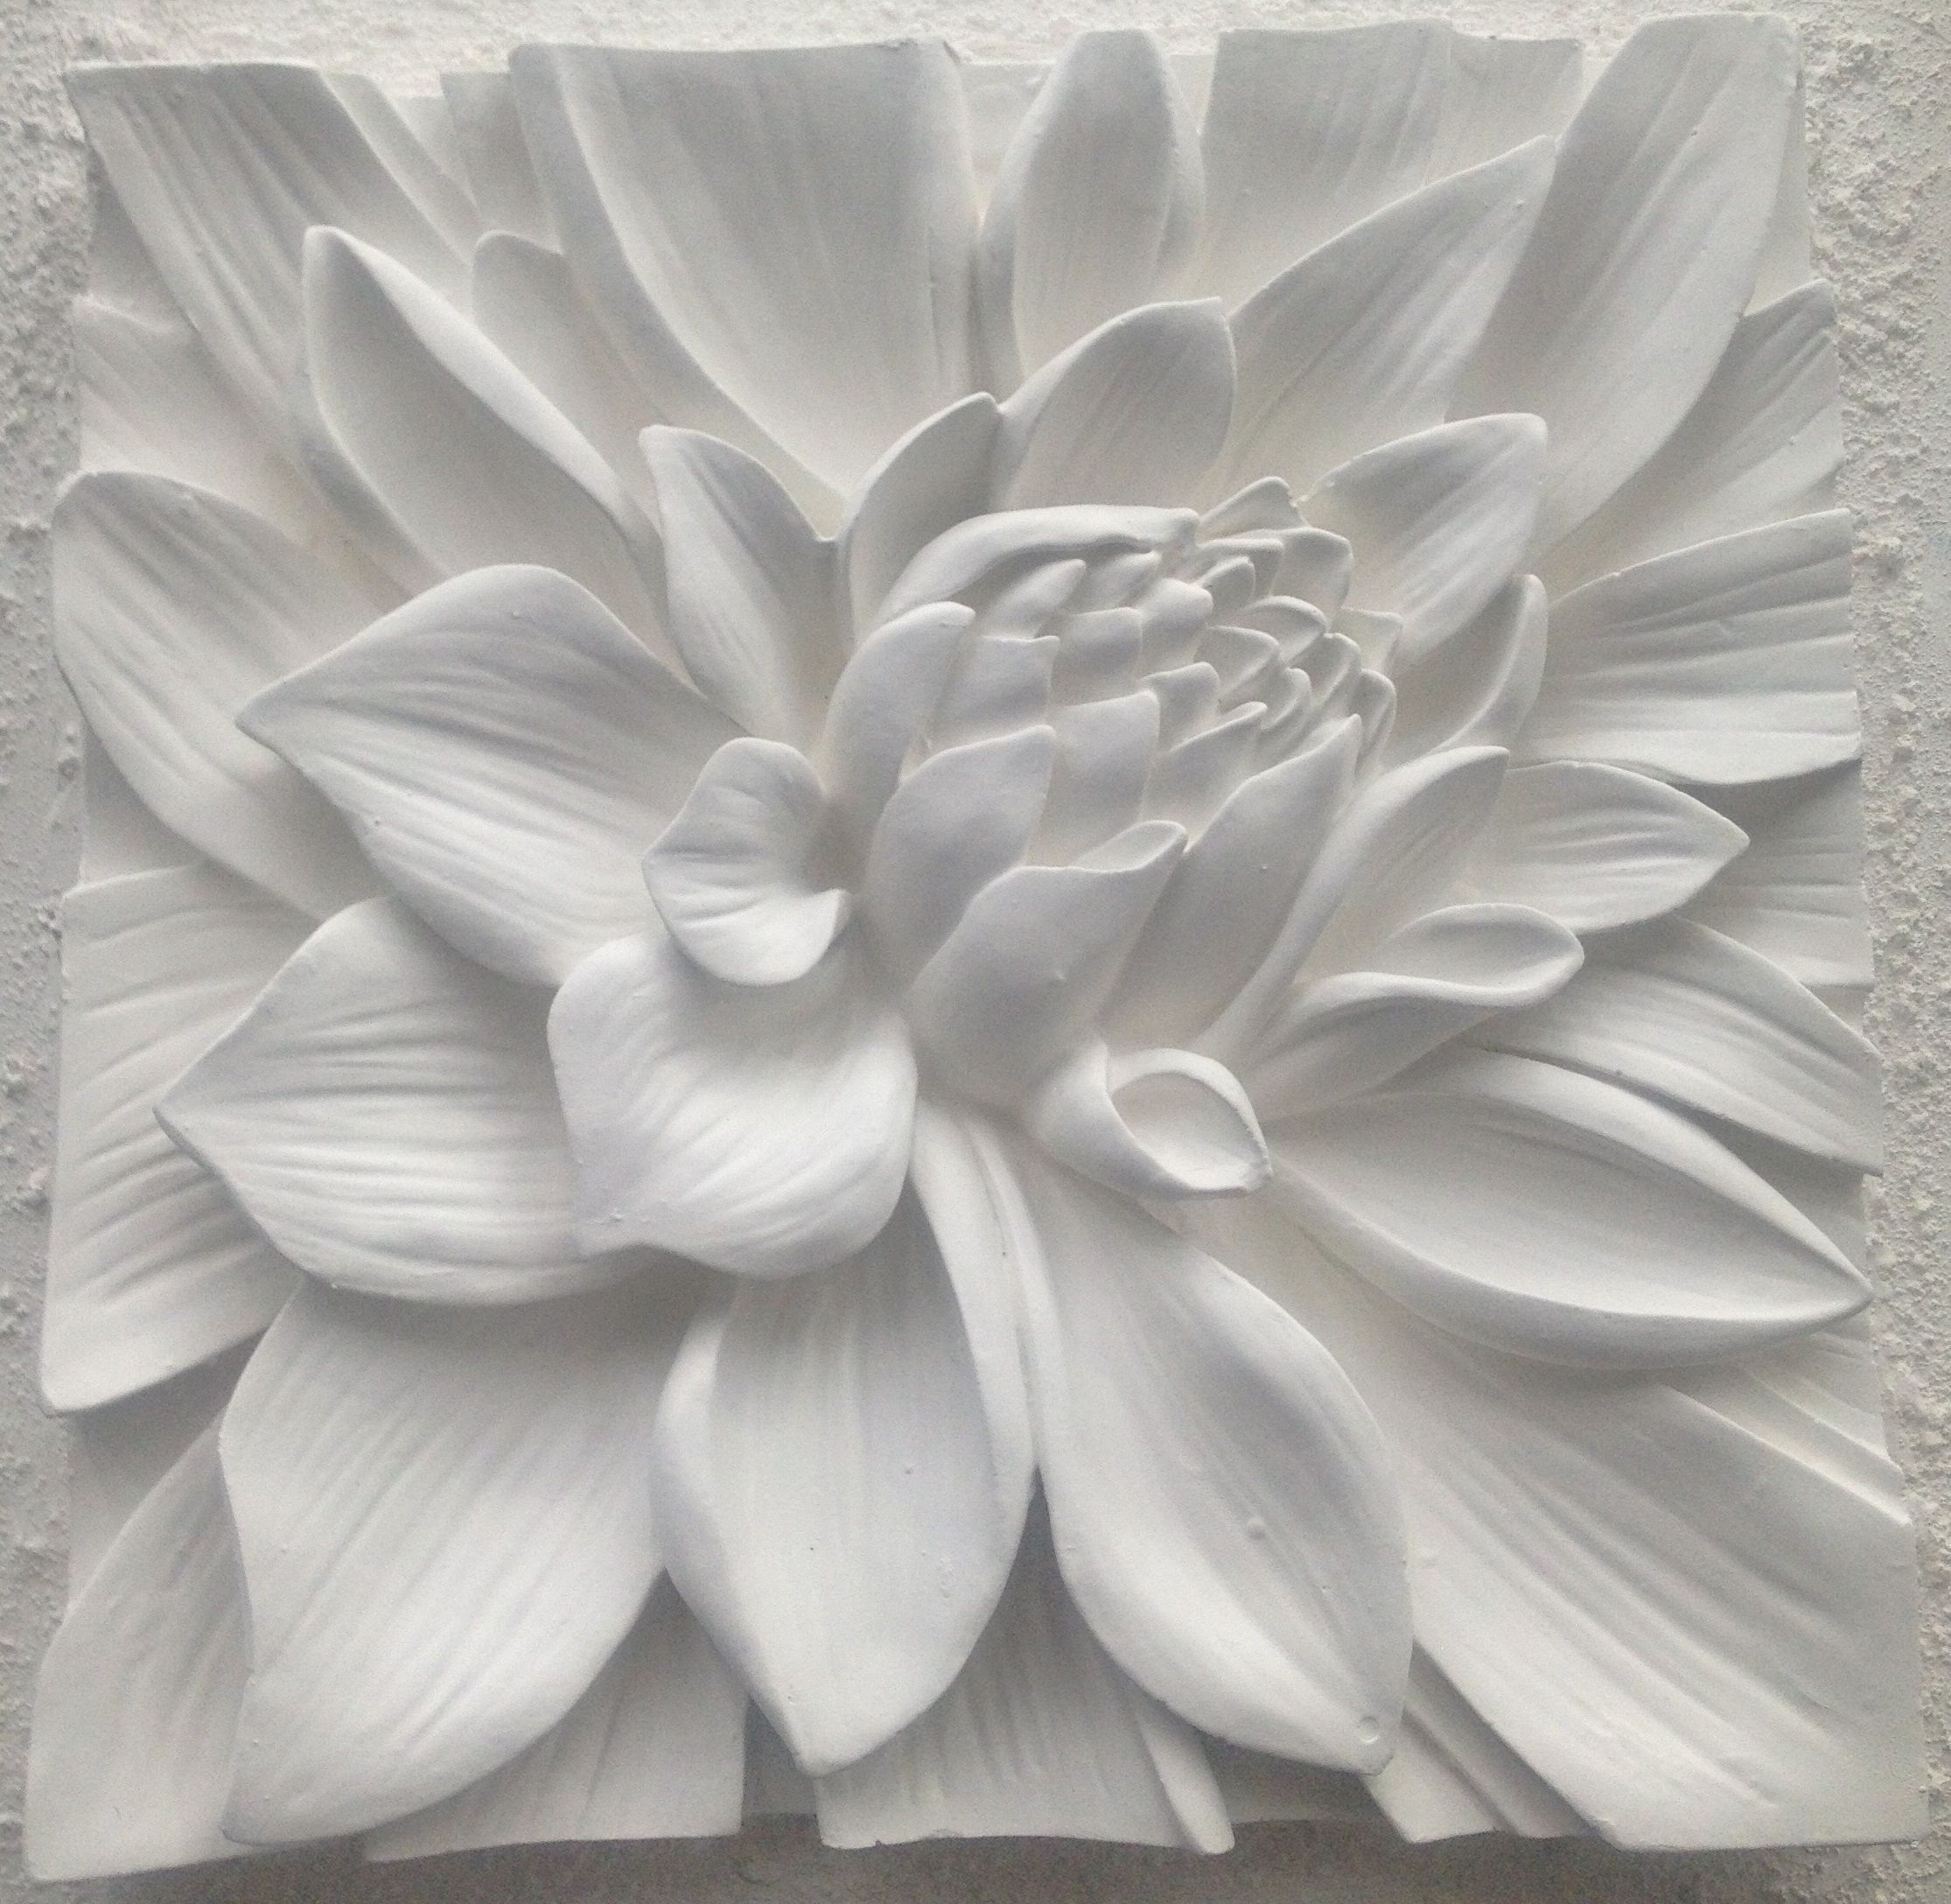 Incroyable The Favorite Is Still The Lotus Flower In Stunning Matte White  Www.bellaartista.com · 3d Wall ArtArt ...